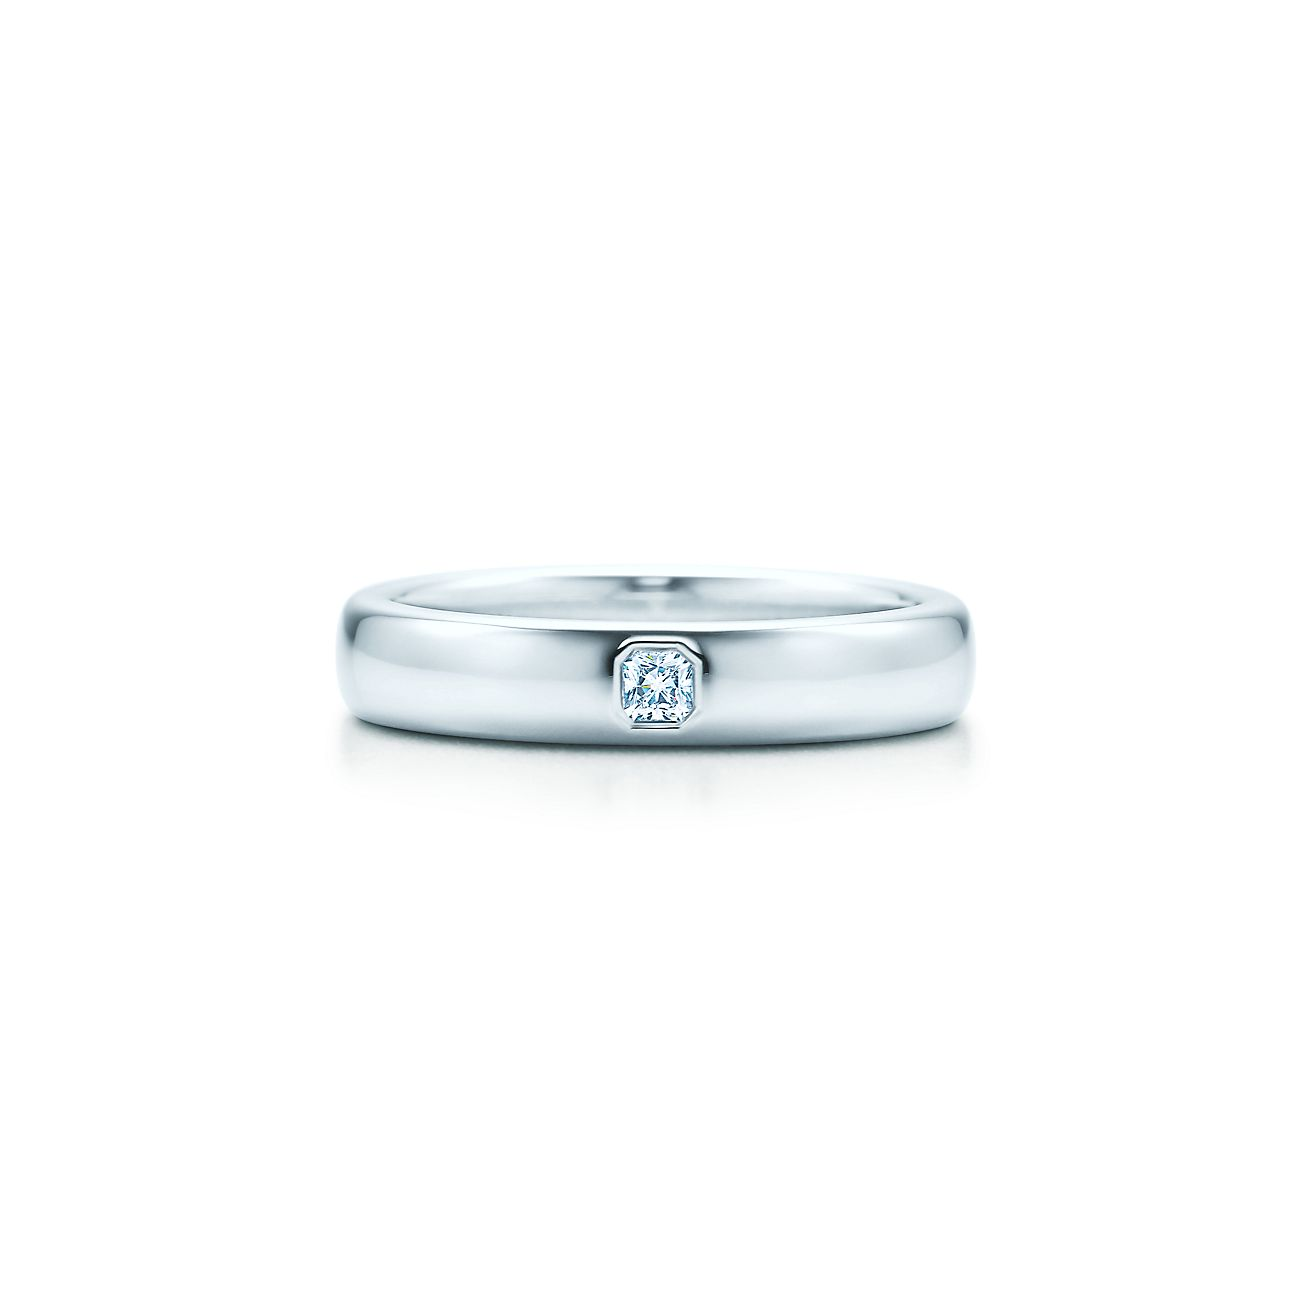 Tiffany classic wedding band ring in platinum with a diamond 4 tiffany classicwedding band ring junglespirit Image collections